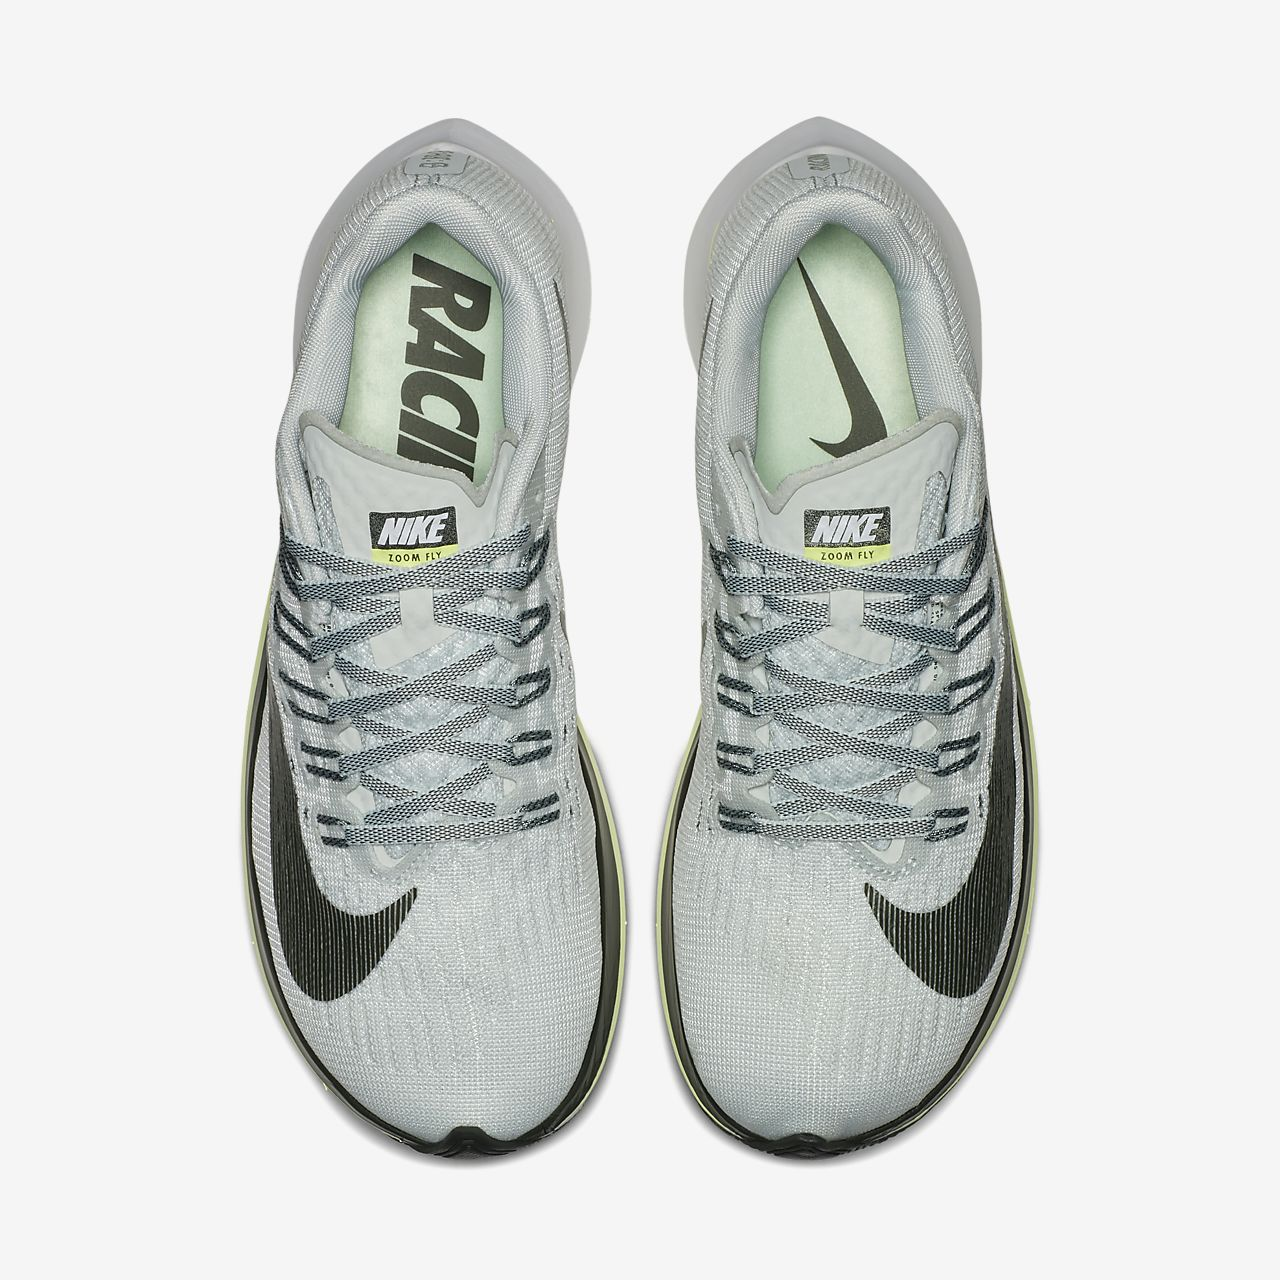 Nike Chaussures soldes Zoom Fly 897821004 Nike soldes Chaussures Chaussures de Trail 0d13b0